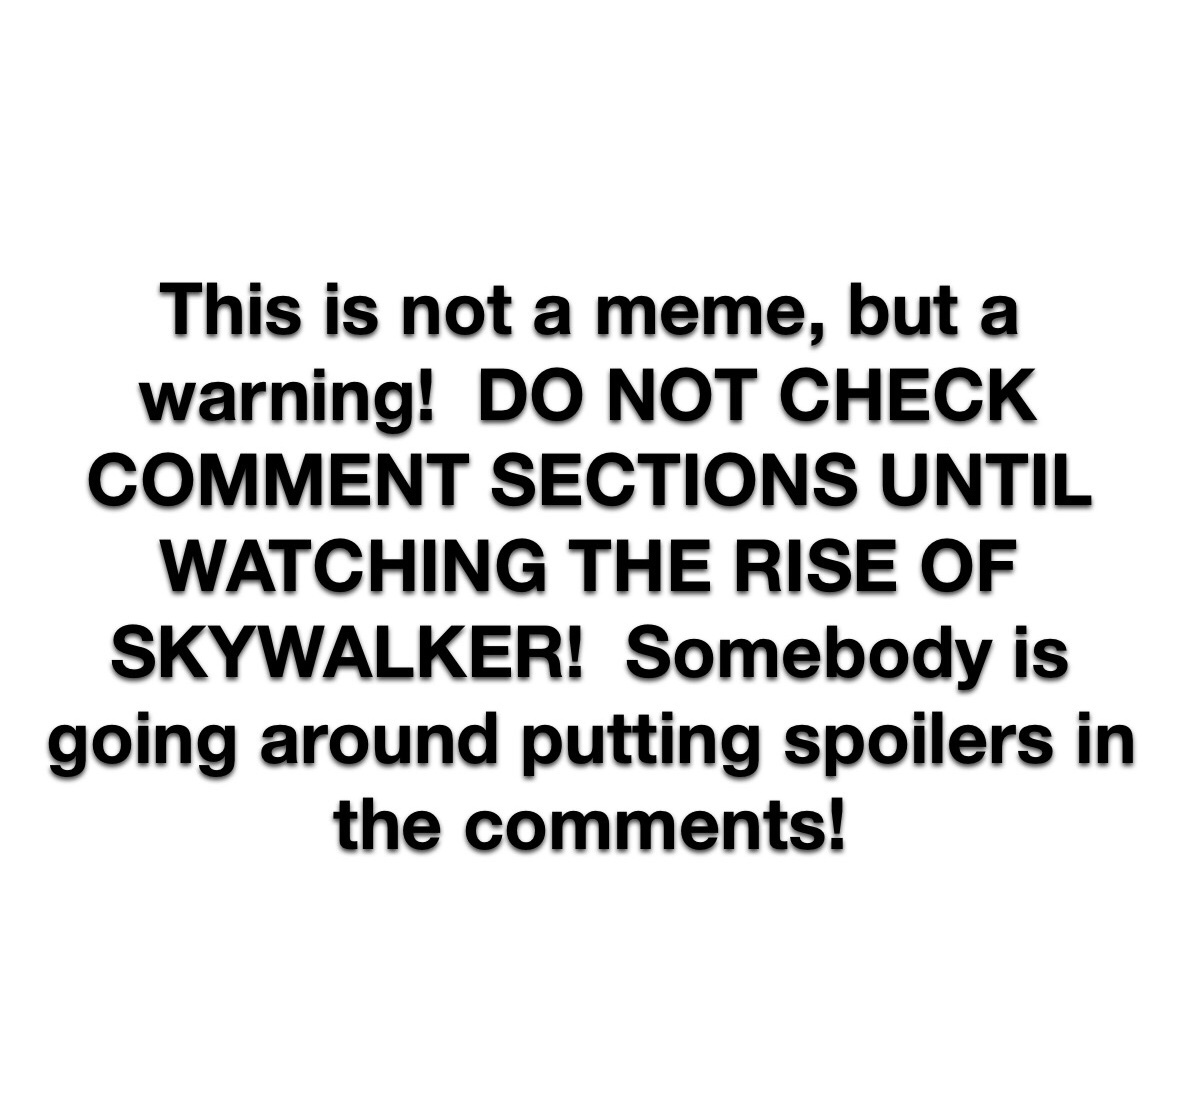 Just a fair warning! (I don't care if it gets upvoted, but please let this get through moderation.) - meme